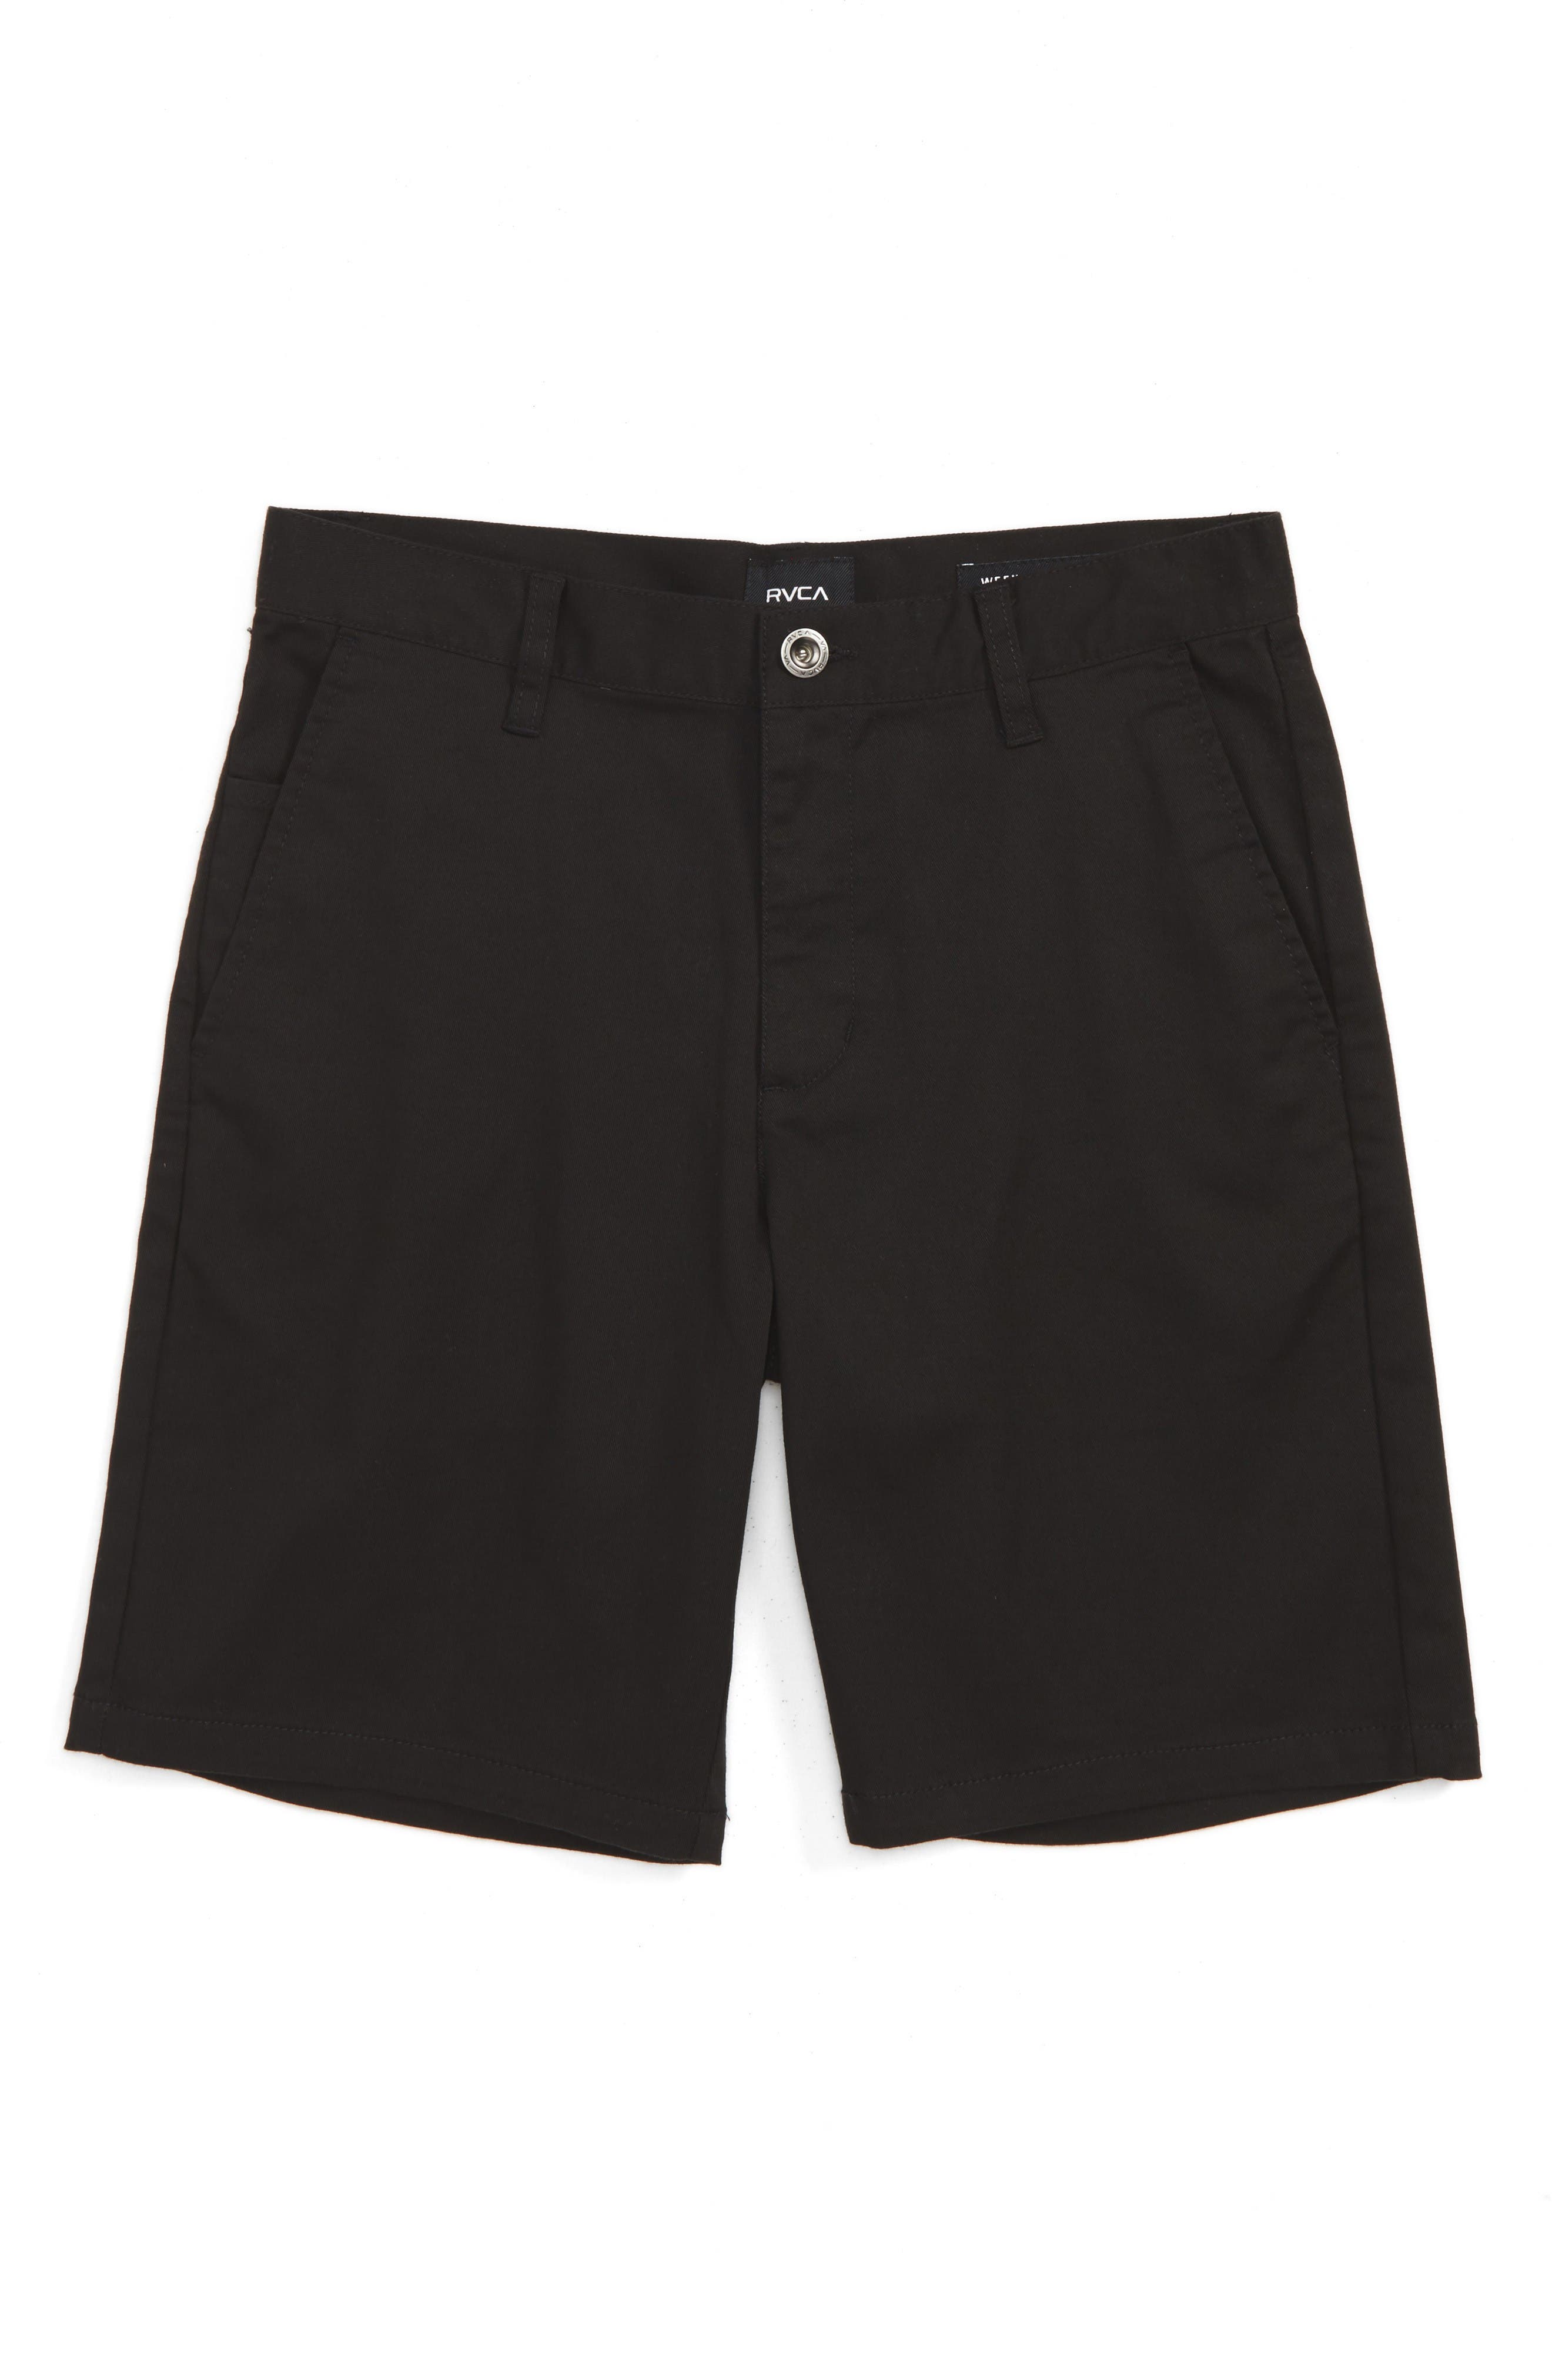 RVCA 'Weekday' Shorts (Big Boys)